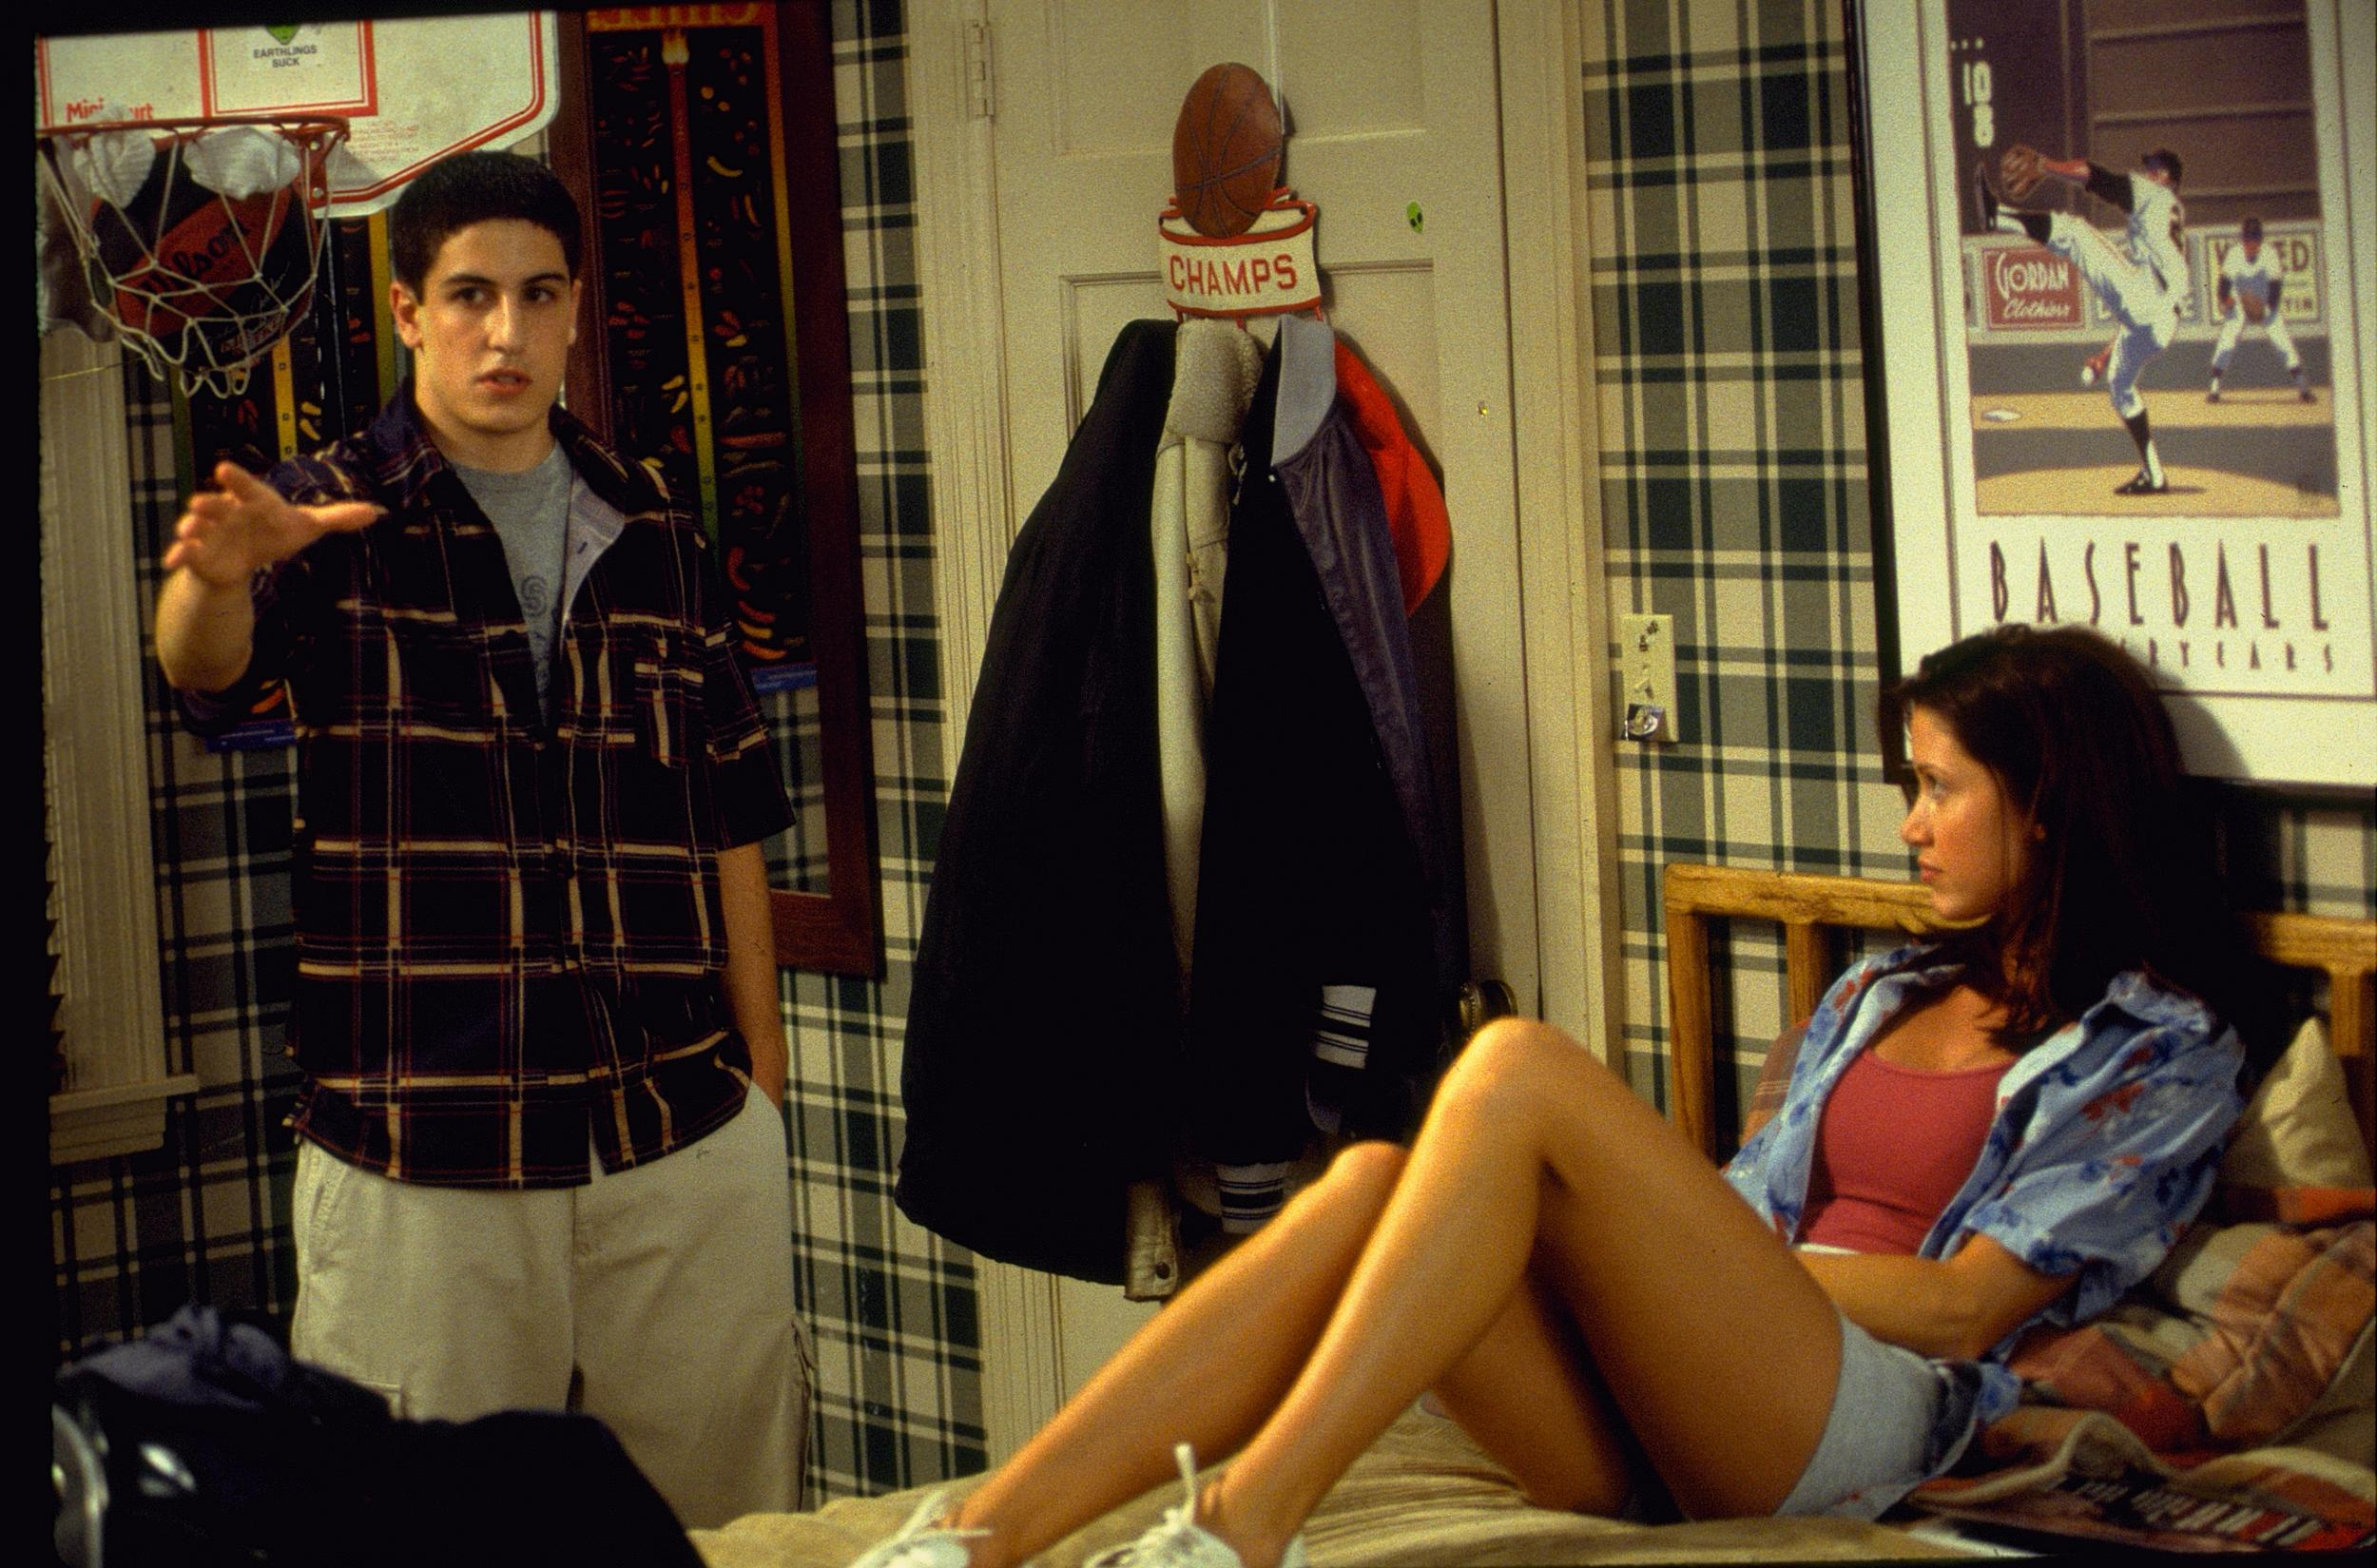 American Pie Nude Boobs american pie wouldn't get made today – according to its